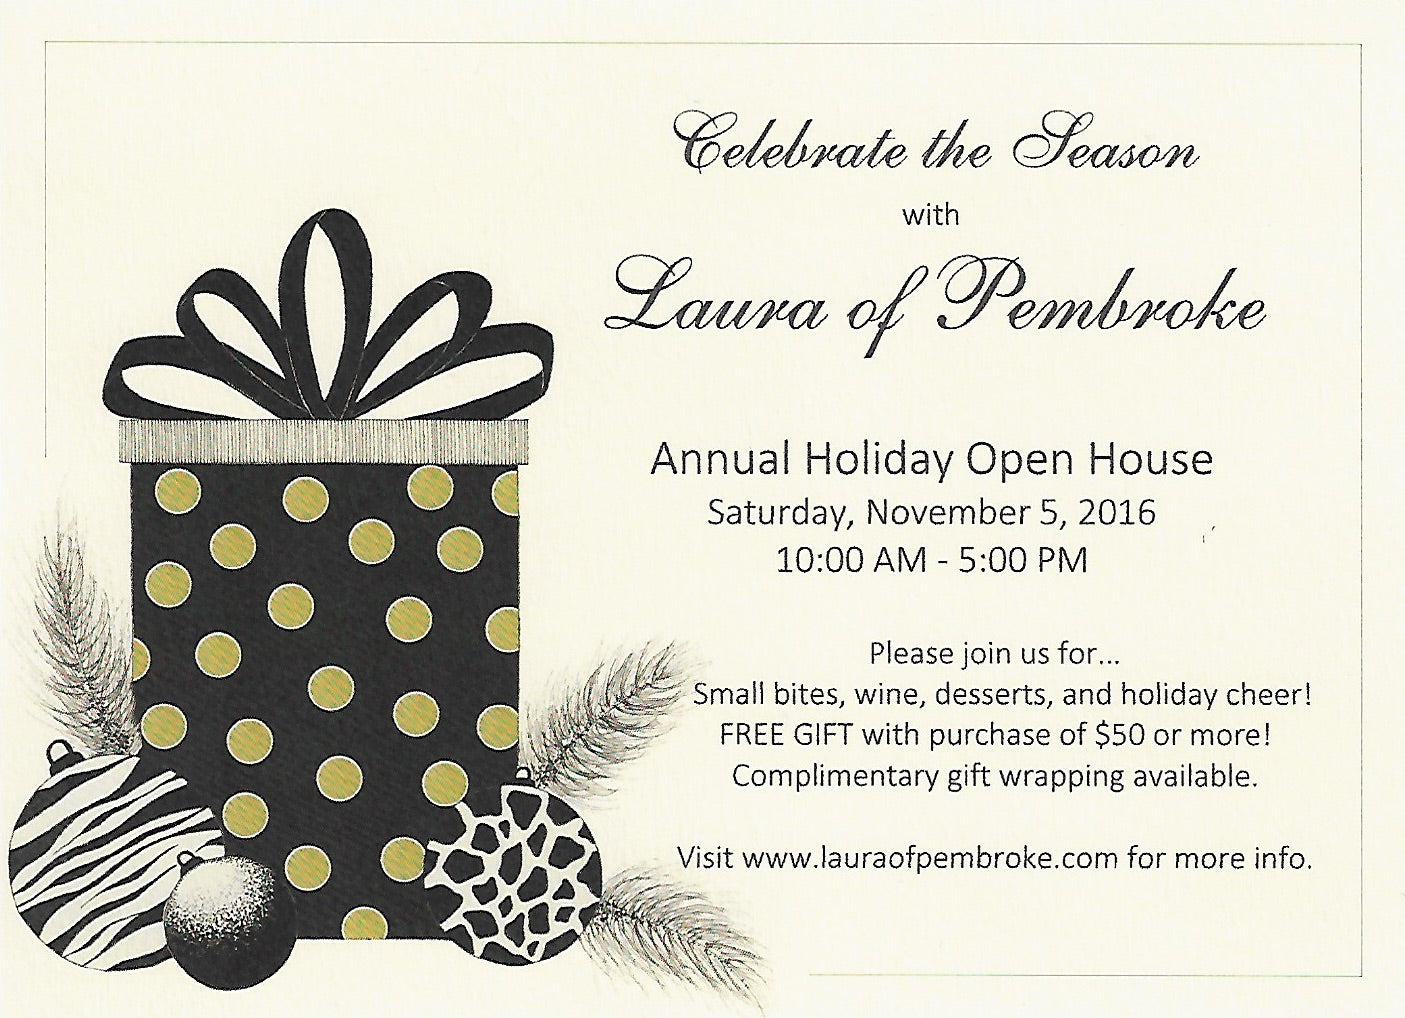 Laura of Pembroke Holiday Open House 2016